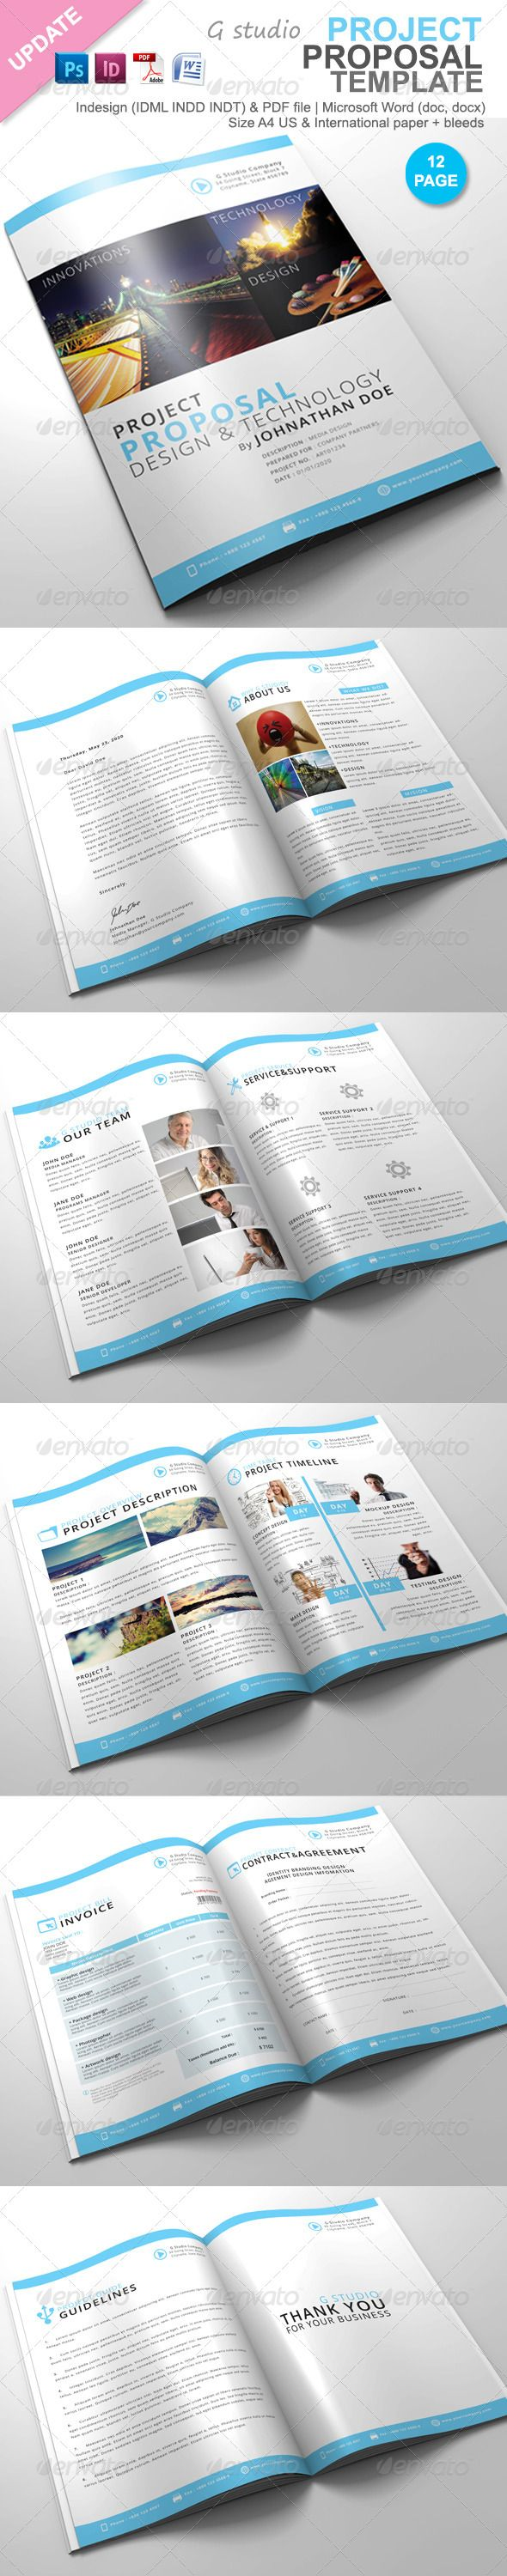 Gstudio Project Proposal Template 100 best Proposal